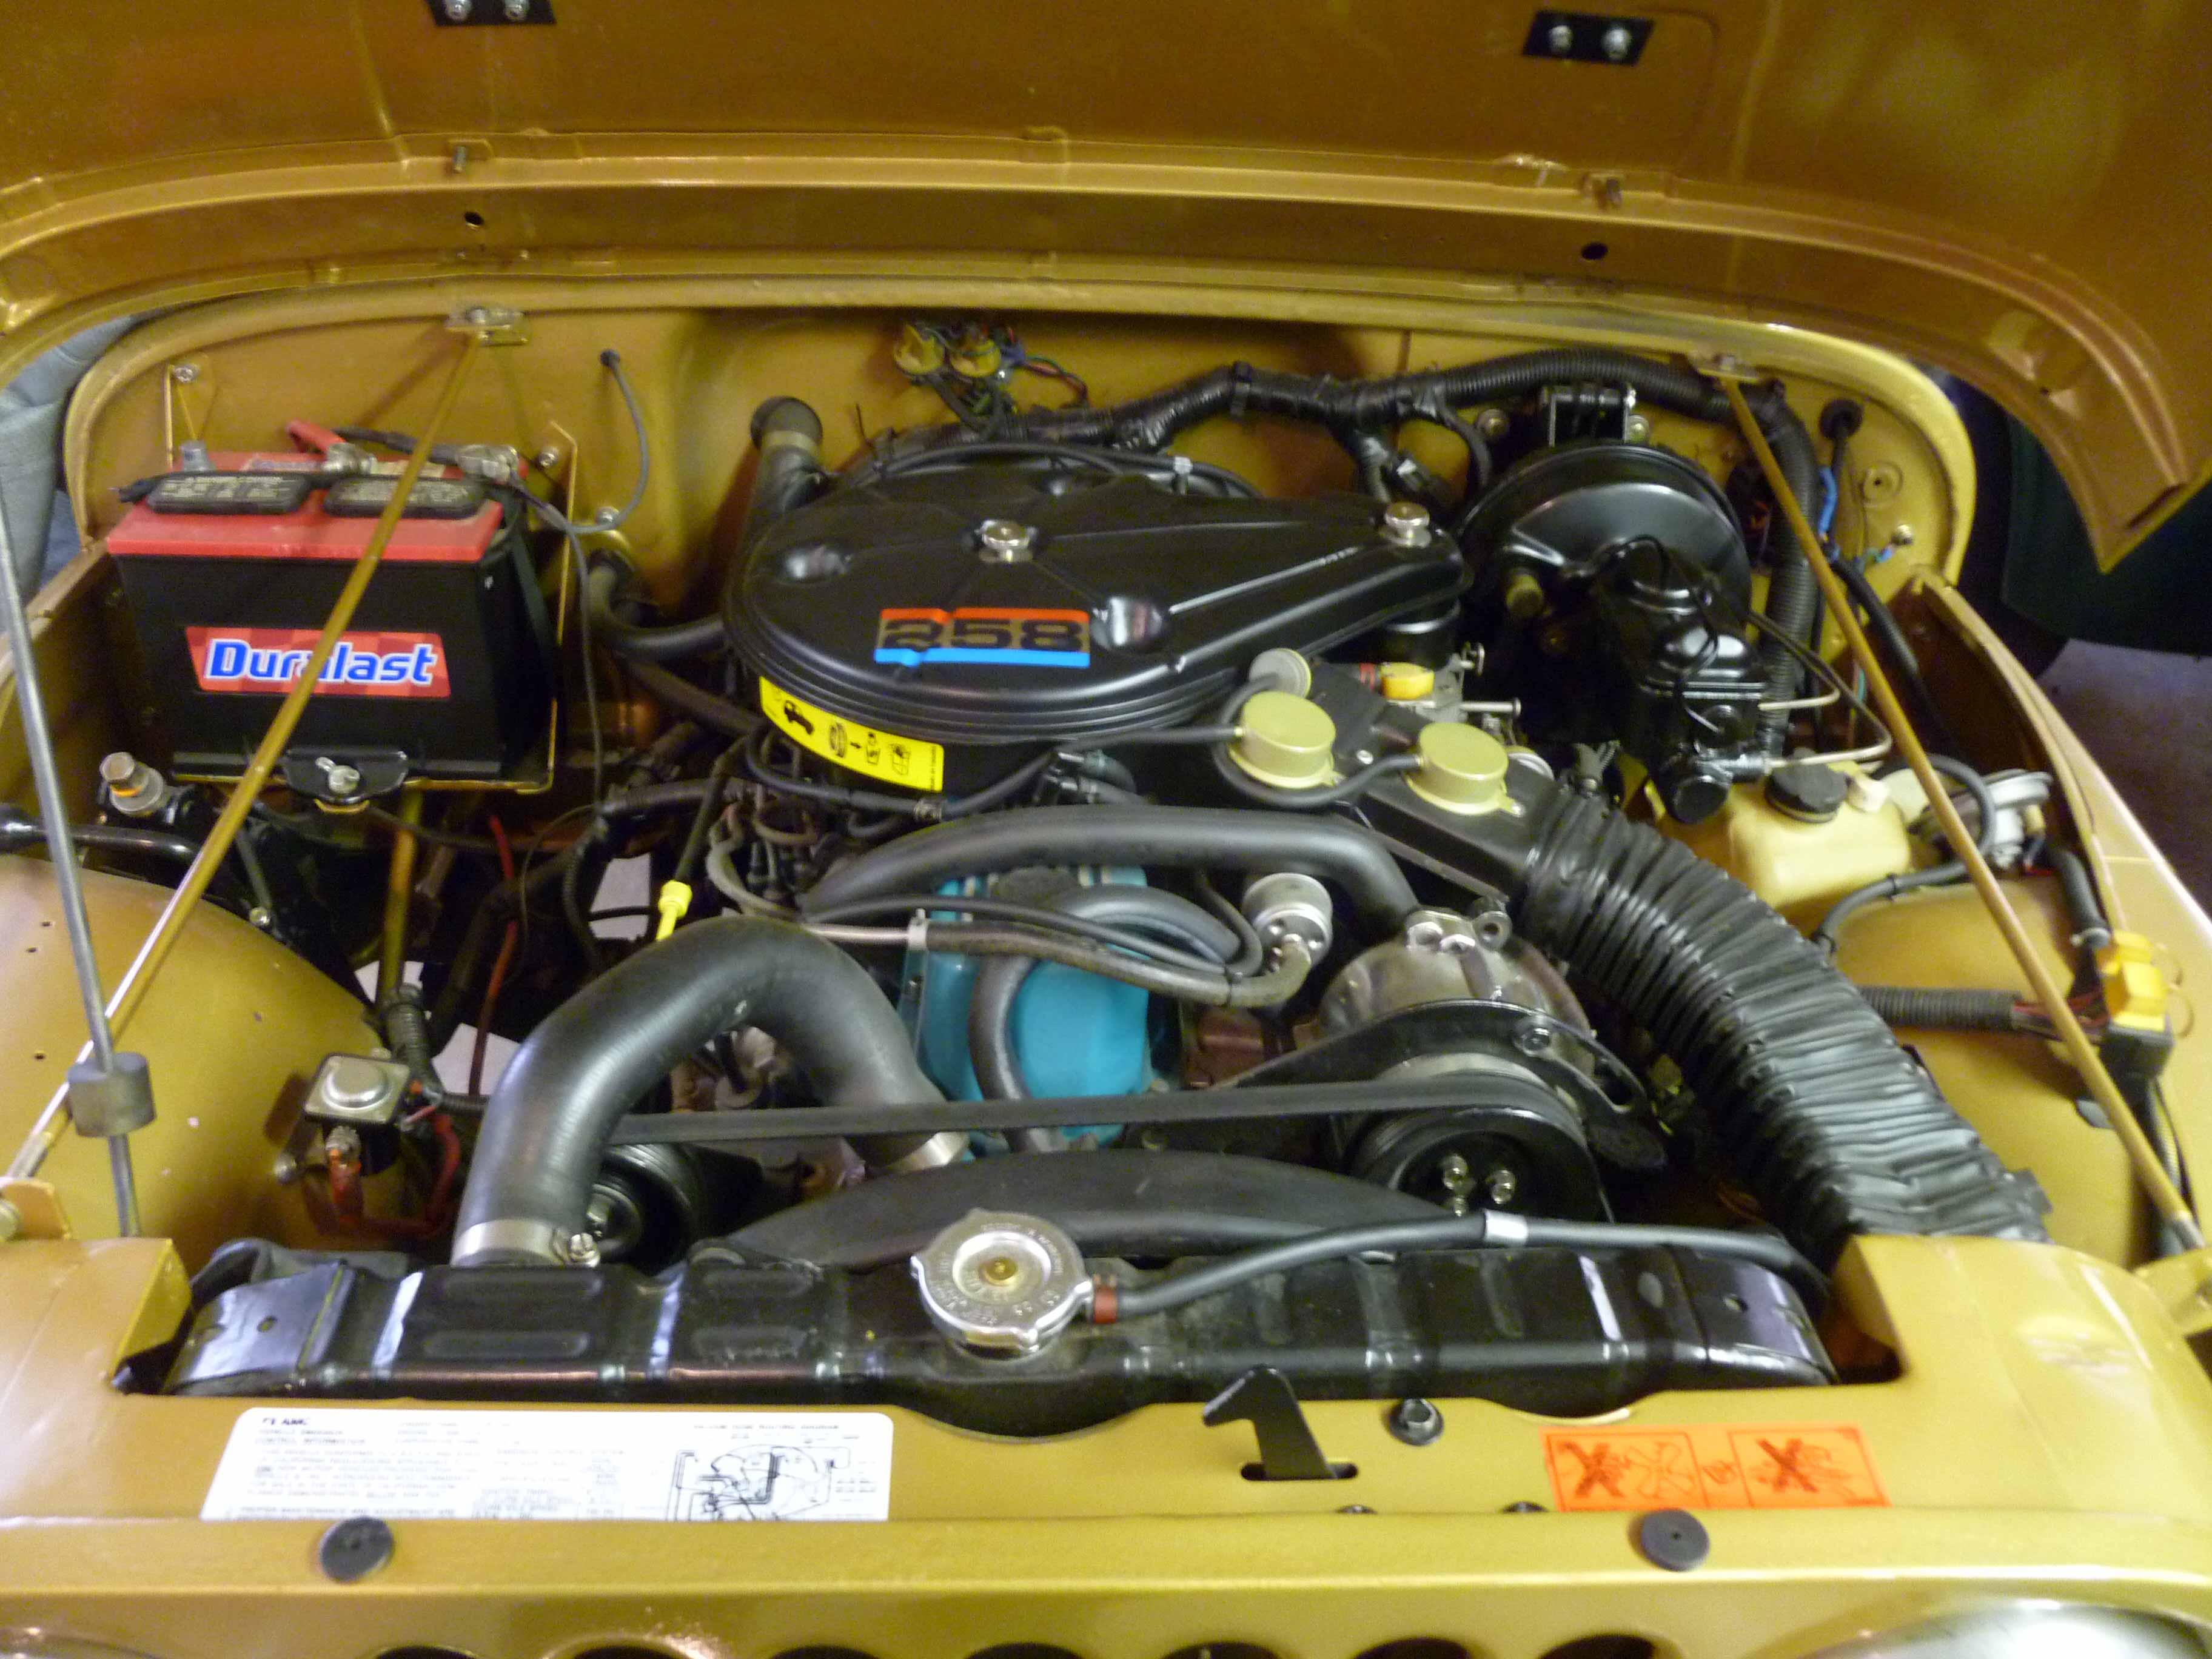 1982 jamboree parts engine  the jambo came standard with amc\u0027s 258 ci engine this was an upgrade from the 151 ci 4 cyl the 258 produces 145 hp @ 4300 rpm and 215 ft lb of